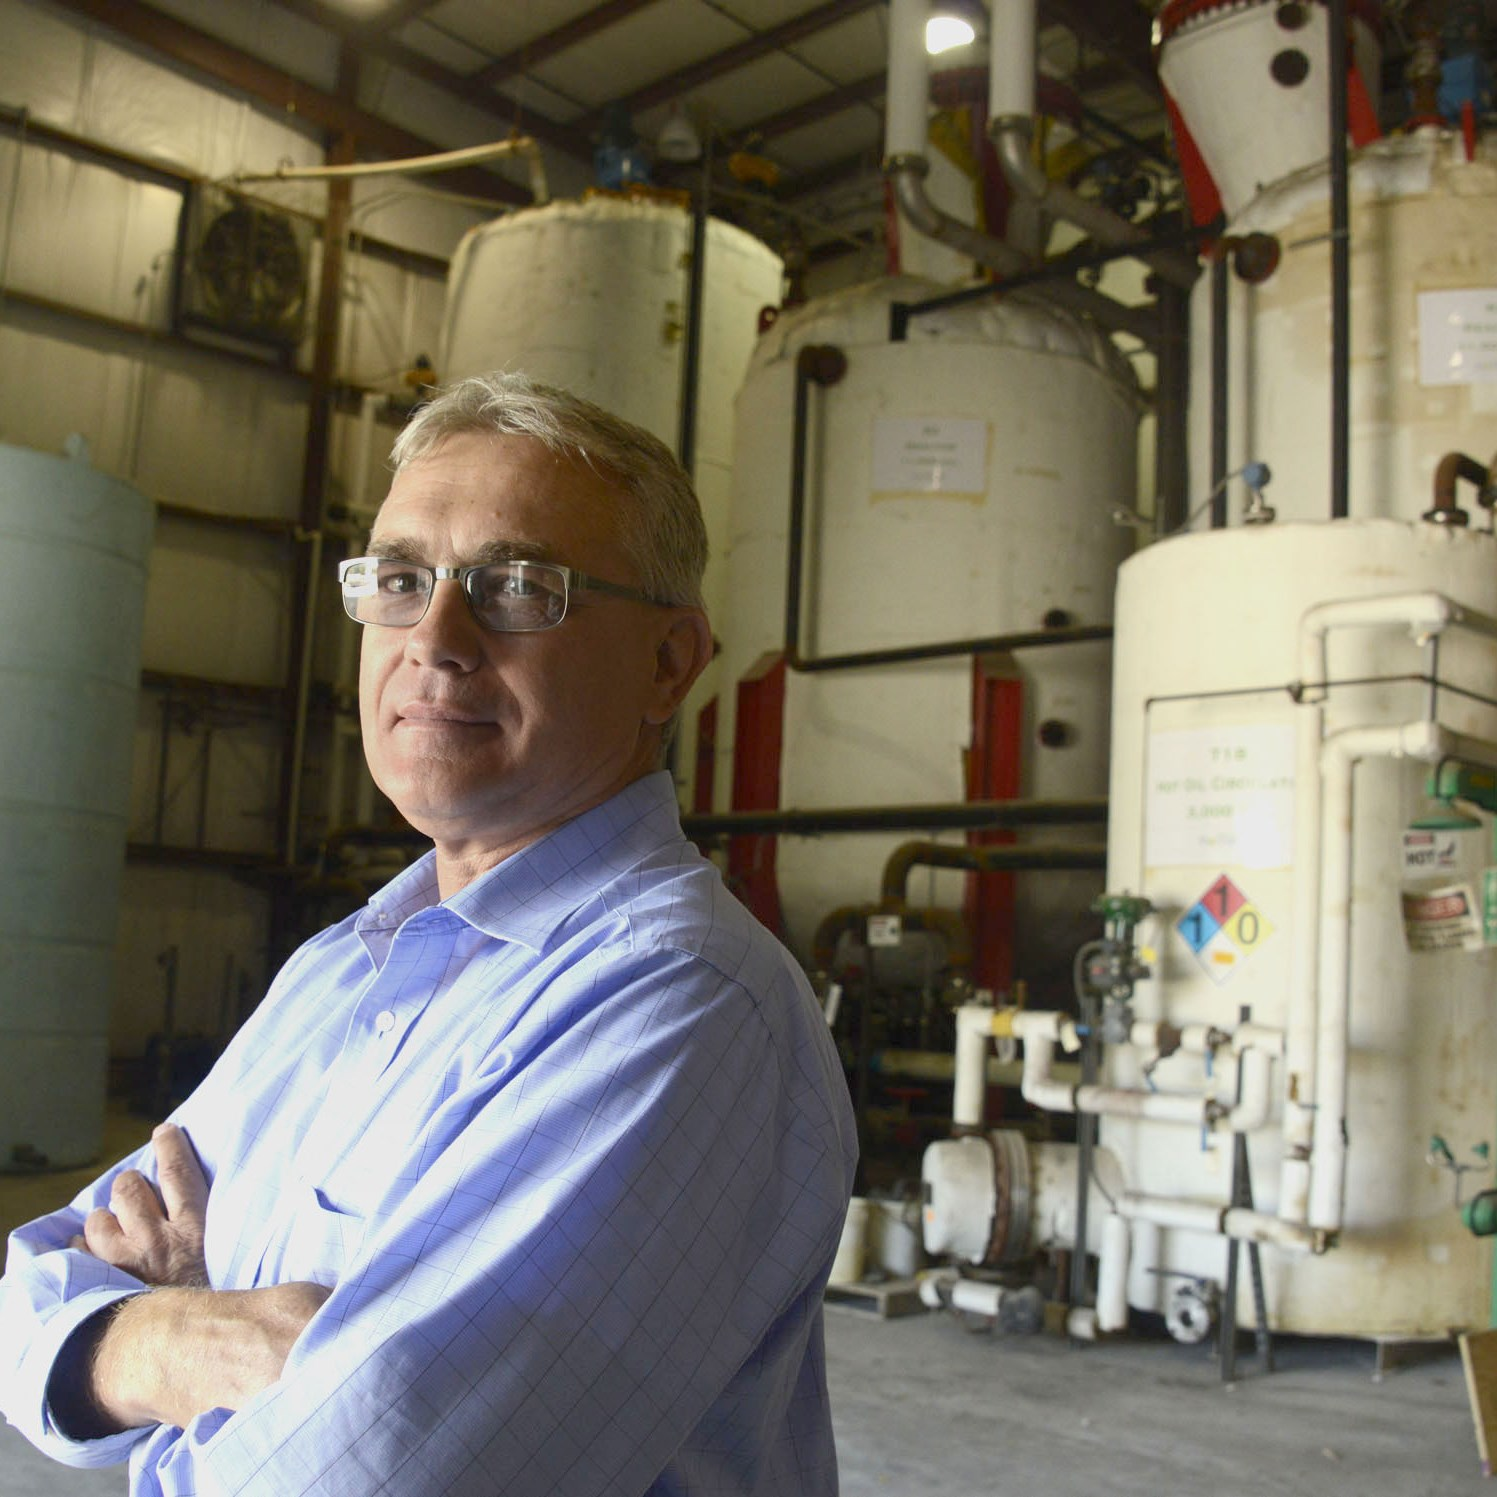 Ed Vescovi in the processing plant where biodiesel will be made by the Weavertown Enviromental Group in Beaver County.